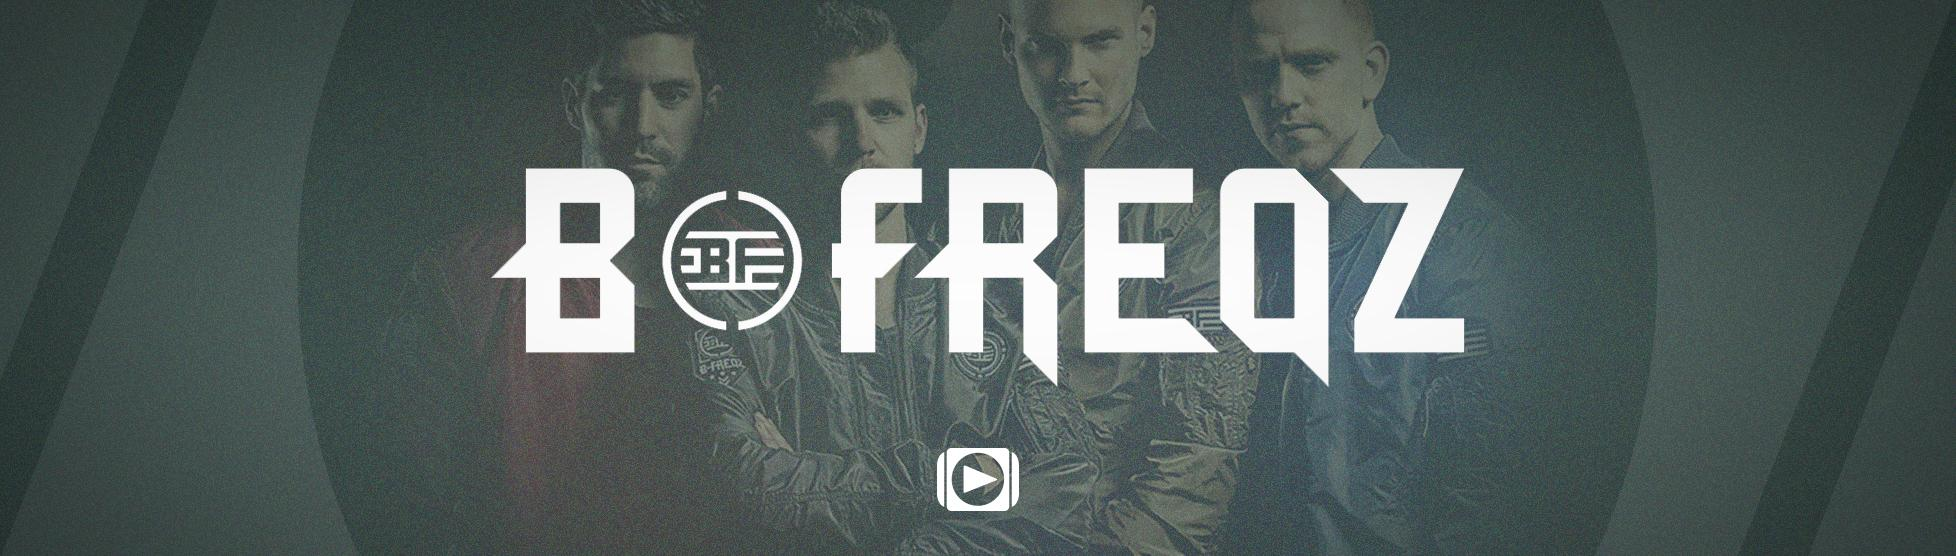 B freqz artists home of hardstyle for Hardstyle house